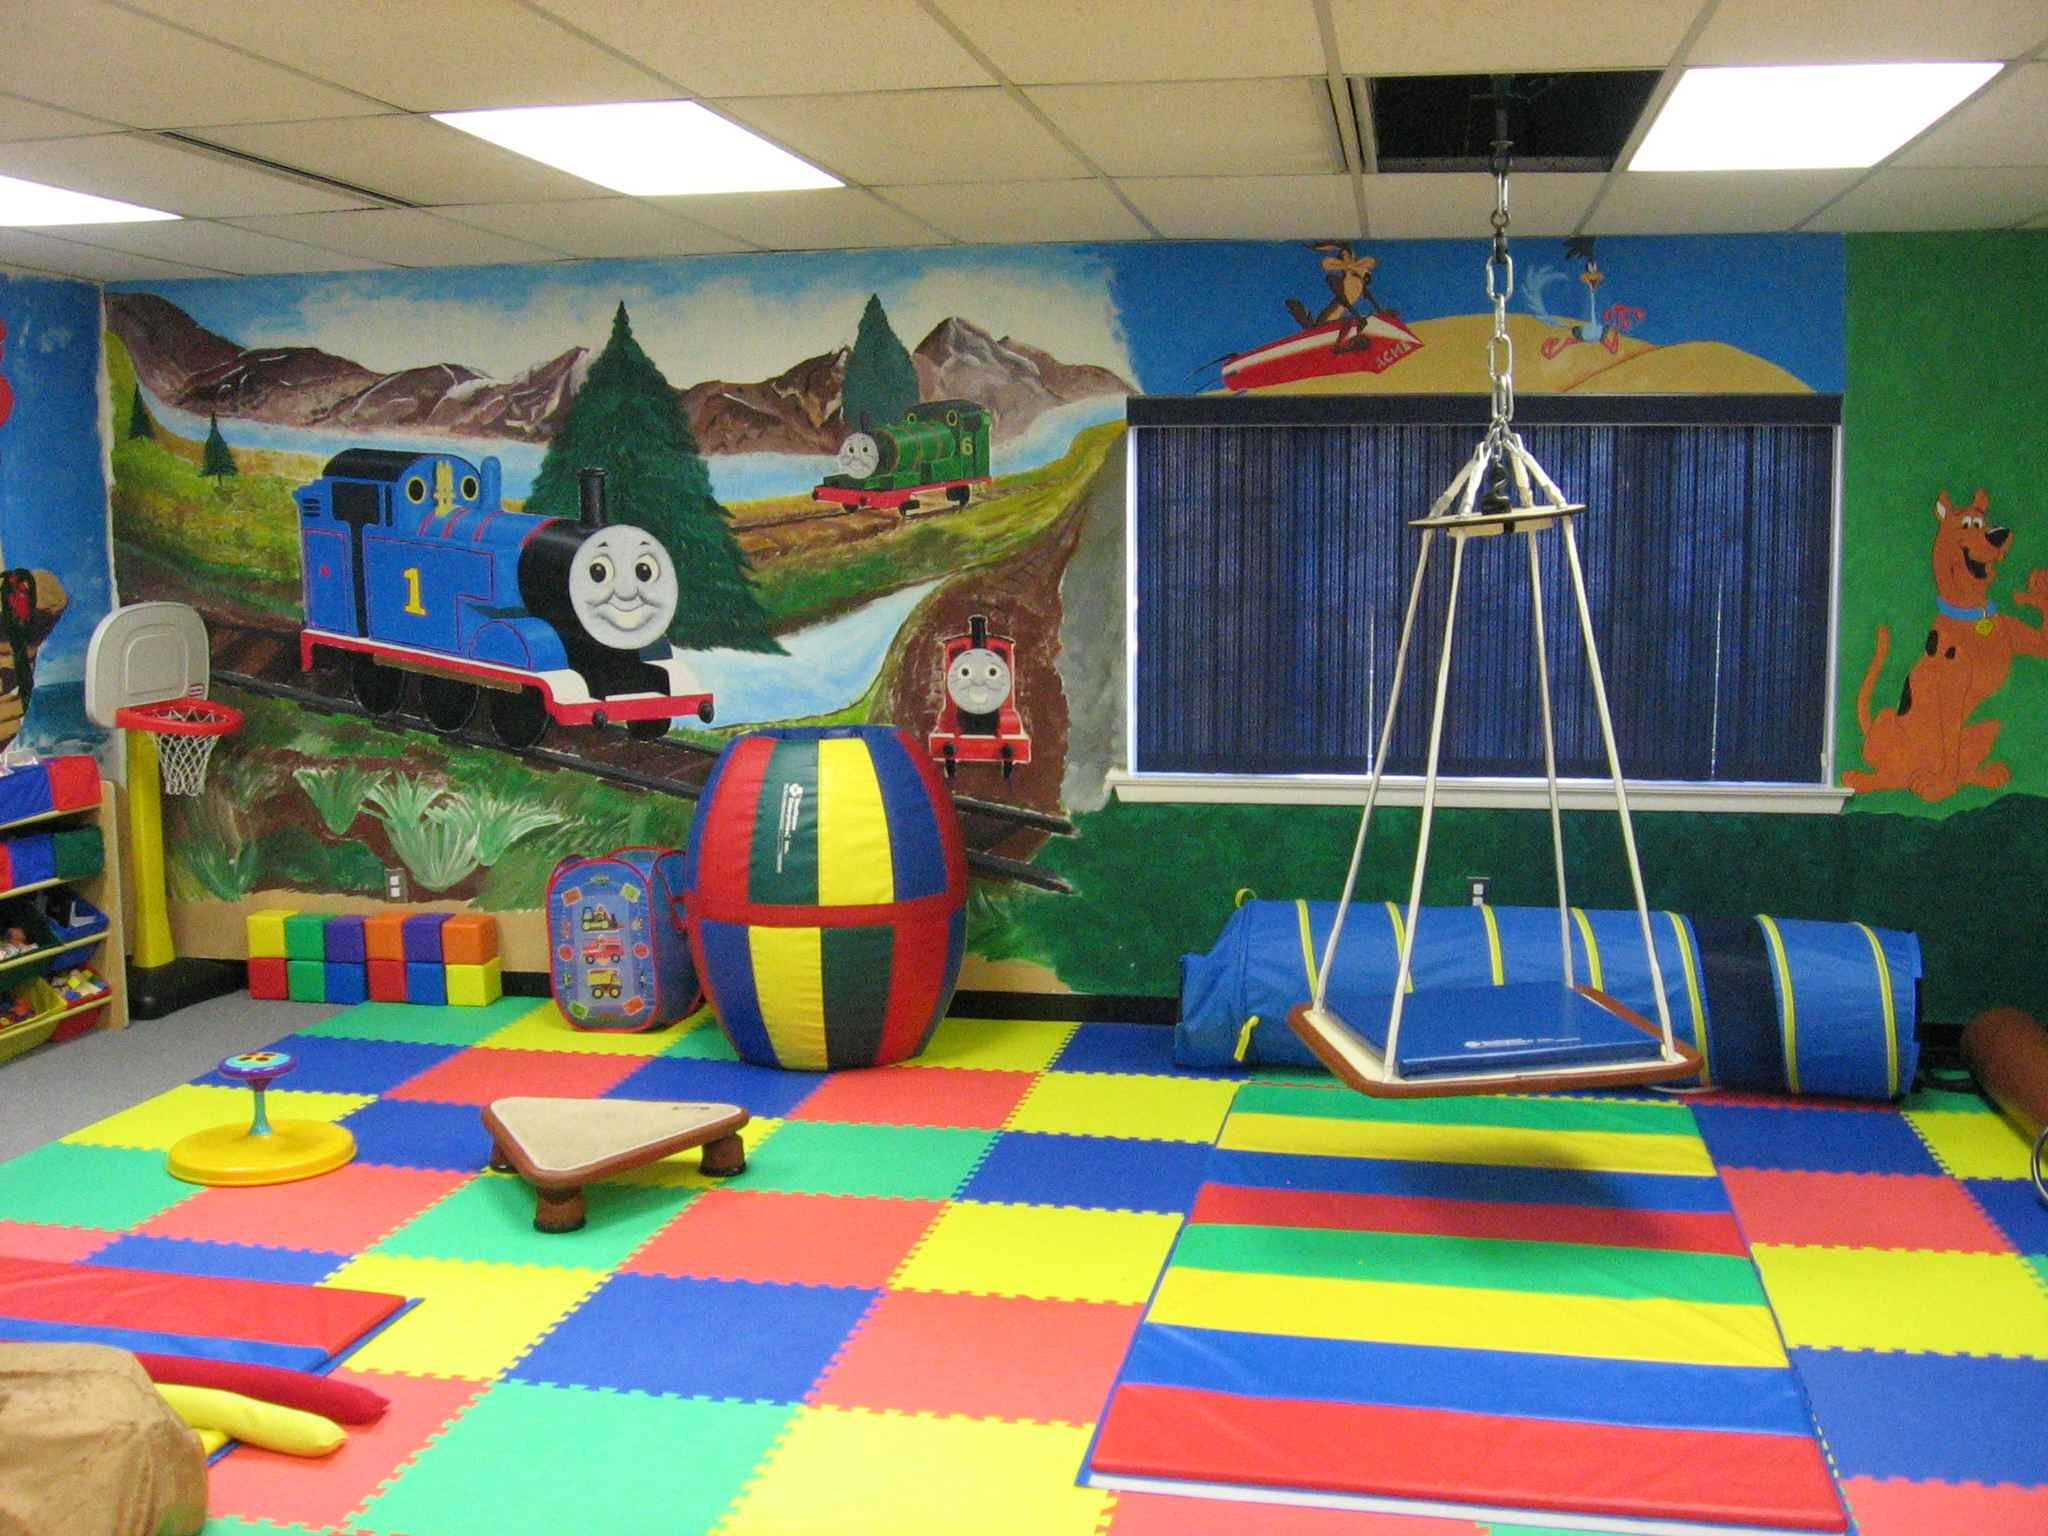 occupational therapy and rehabilitation : sensory integration room